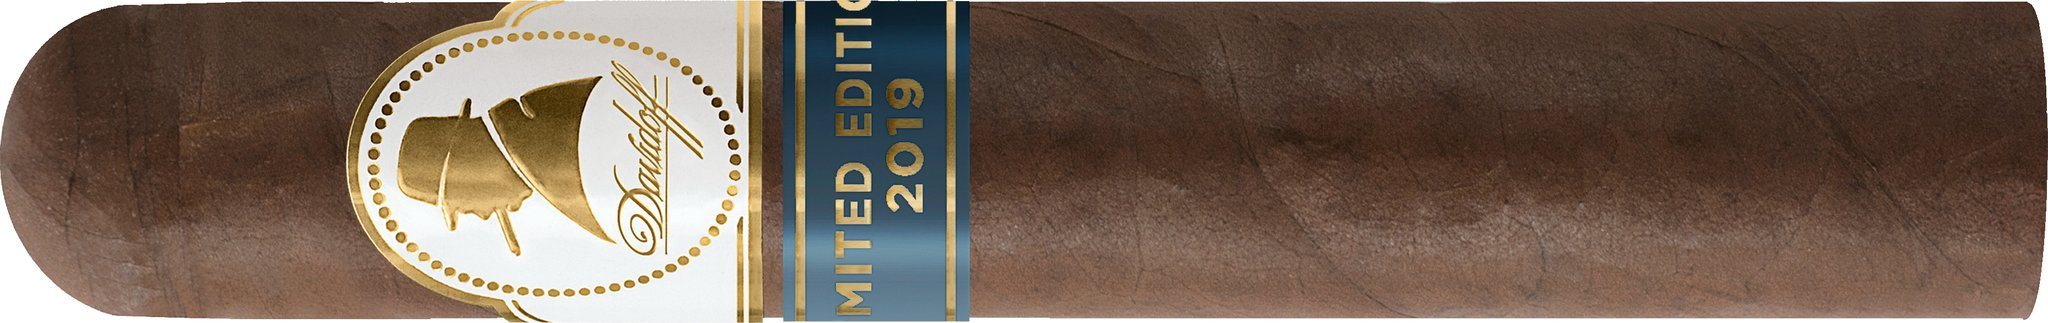 Winston Churchill Limited Edition 2019 (Robusto)